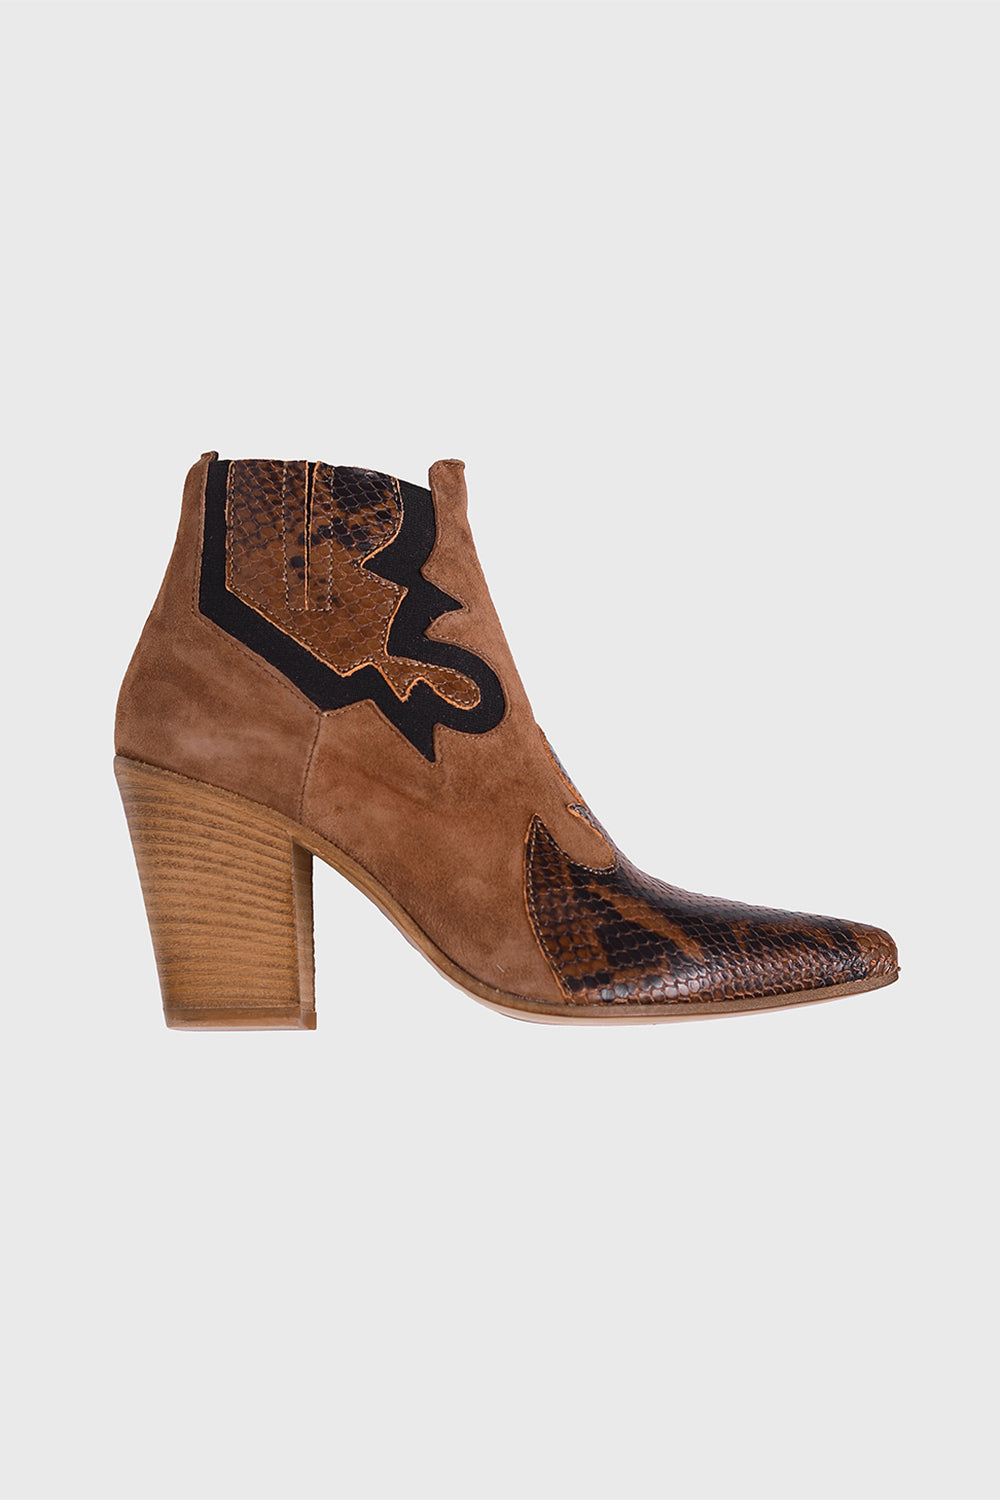 Dallas Pit Stamp C Boots - hazel